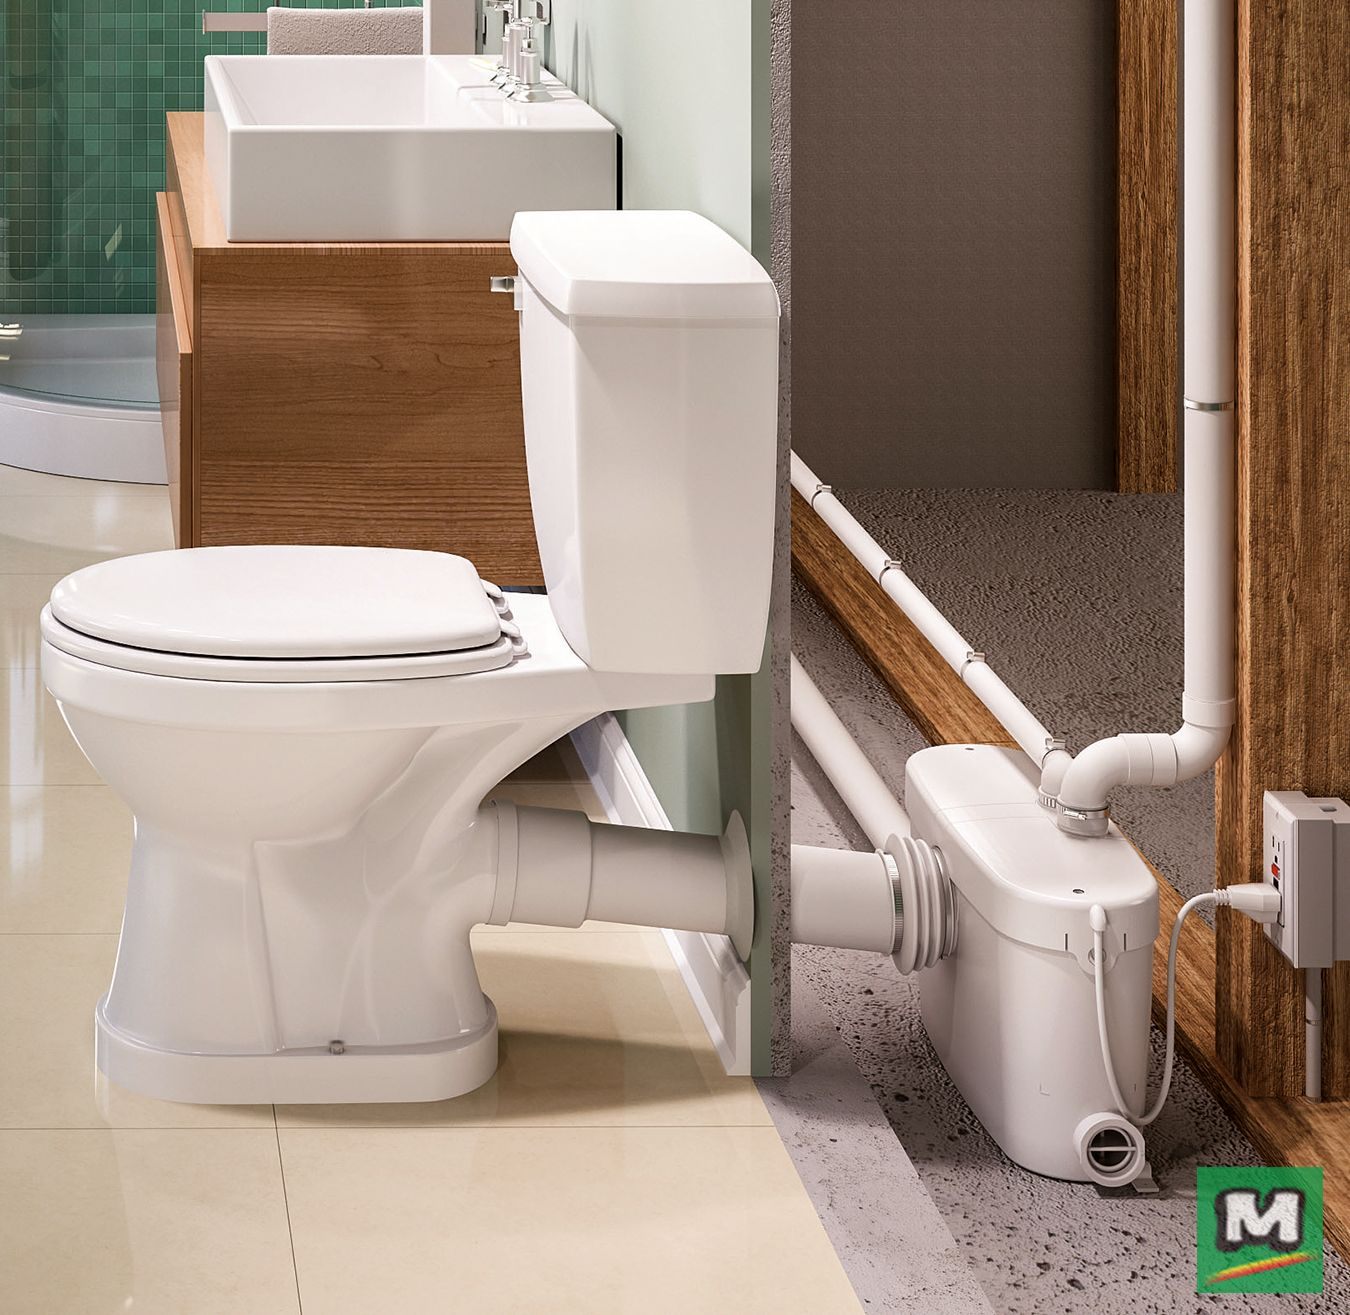 install a basement bathroom without the need to break concrete the sanipro macerating toilet system is a breeze to install virtually anywhere with a power  [ 1350 x 1315 Pixel ]